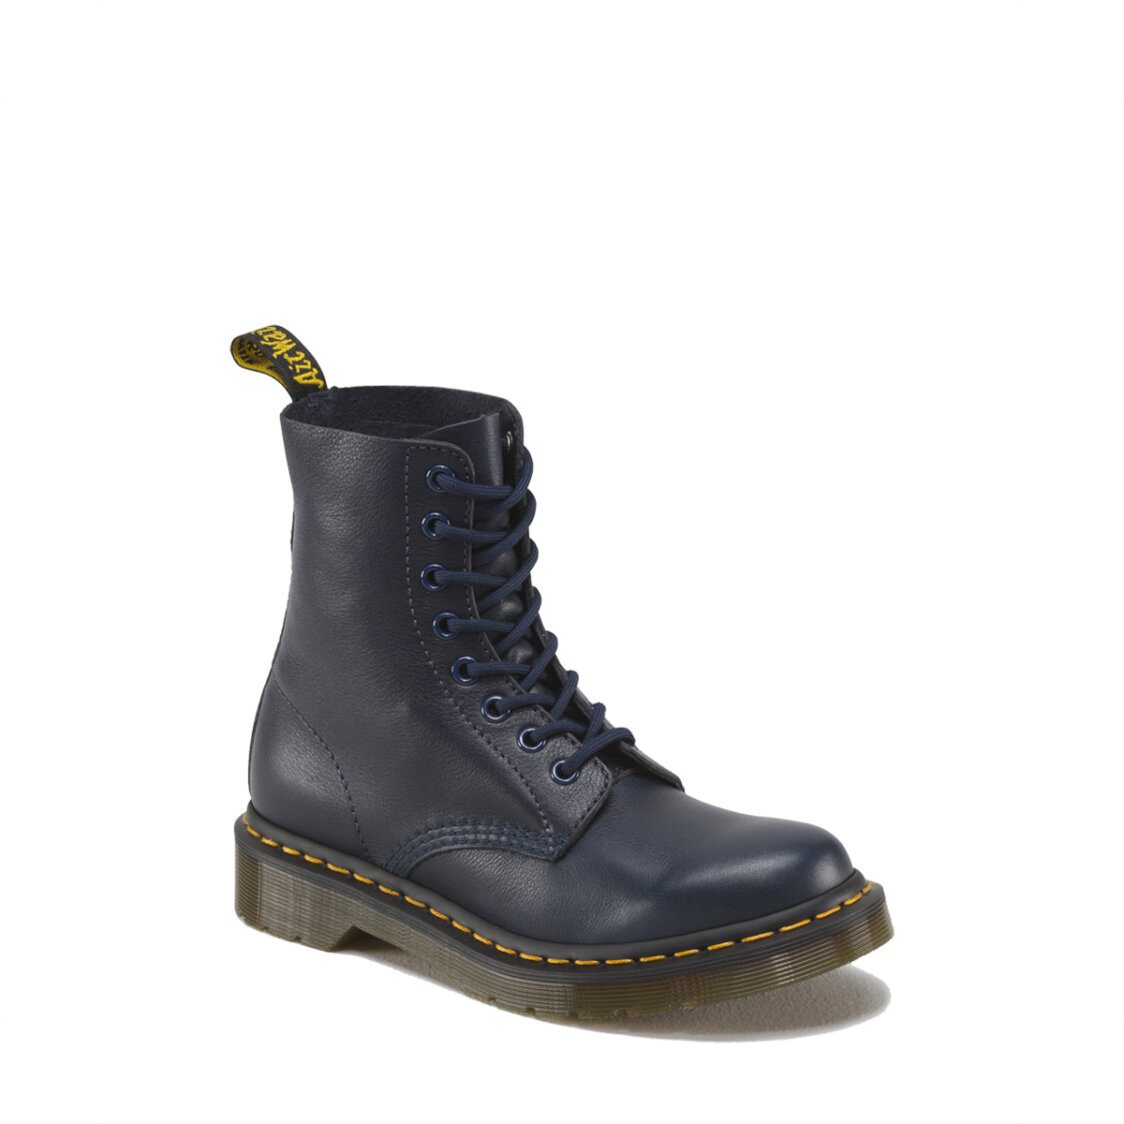 Dr Marten 1460 Pascal Virginia Leather 8 Eyelet Ankle Boots